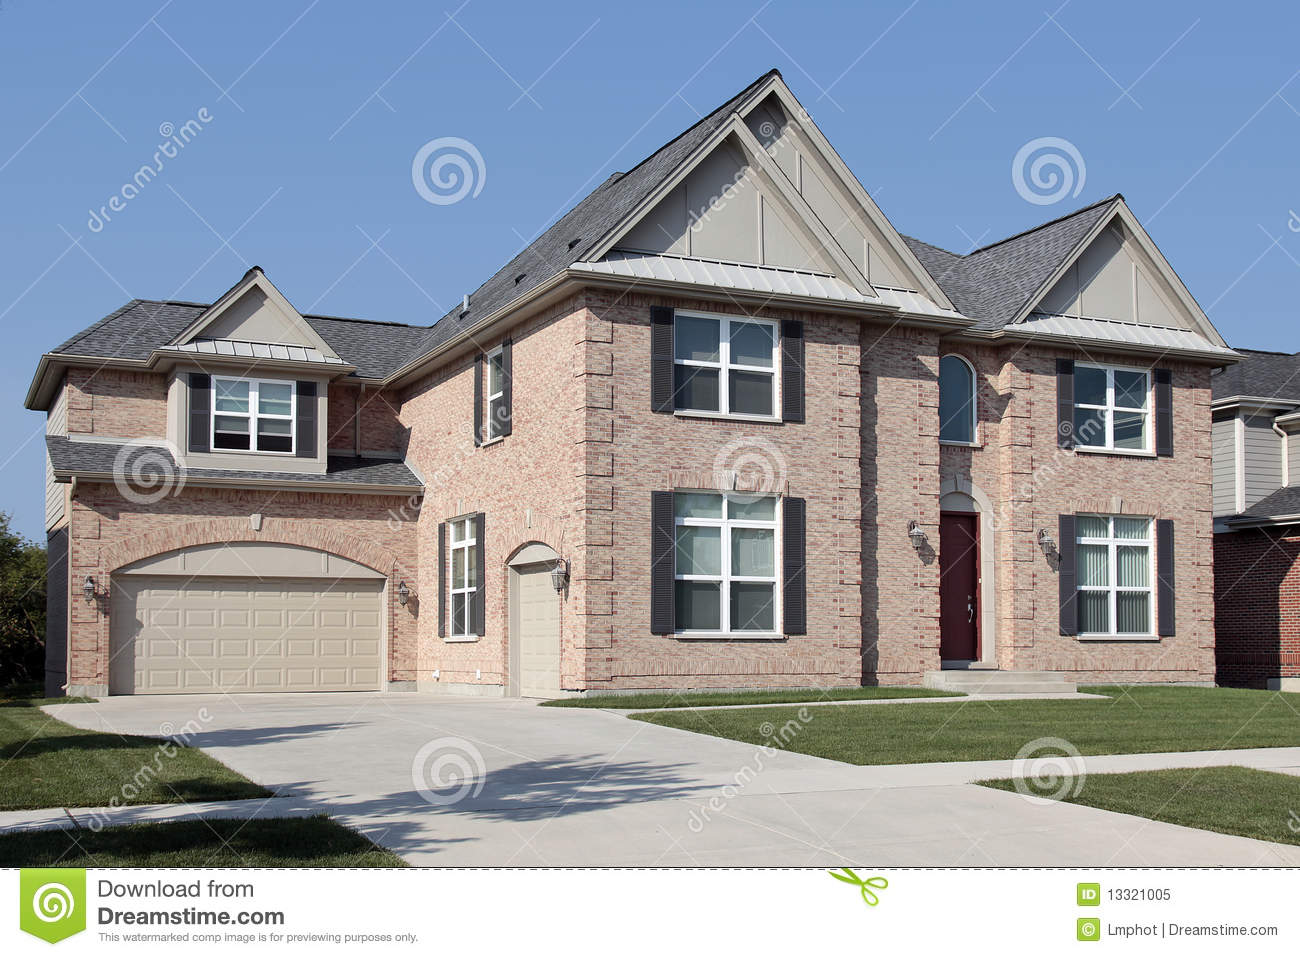 Brick house with black shutters royalty free stock photo for Black brick on house